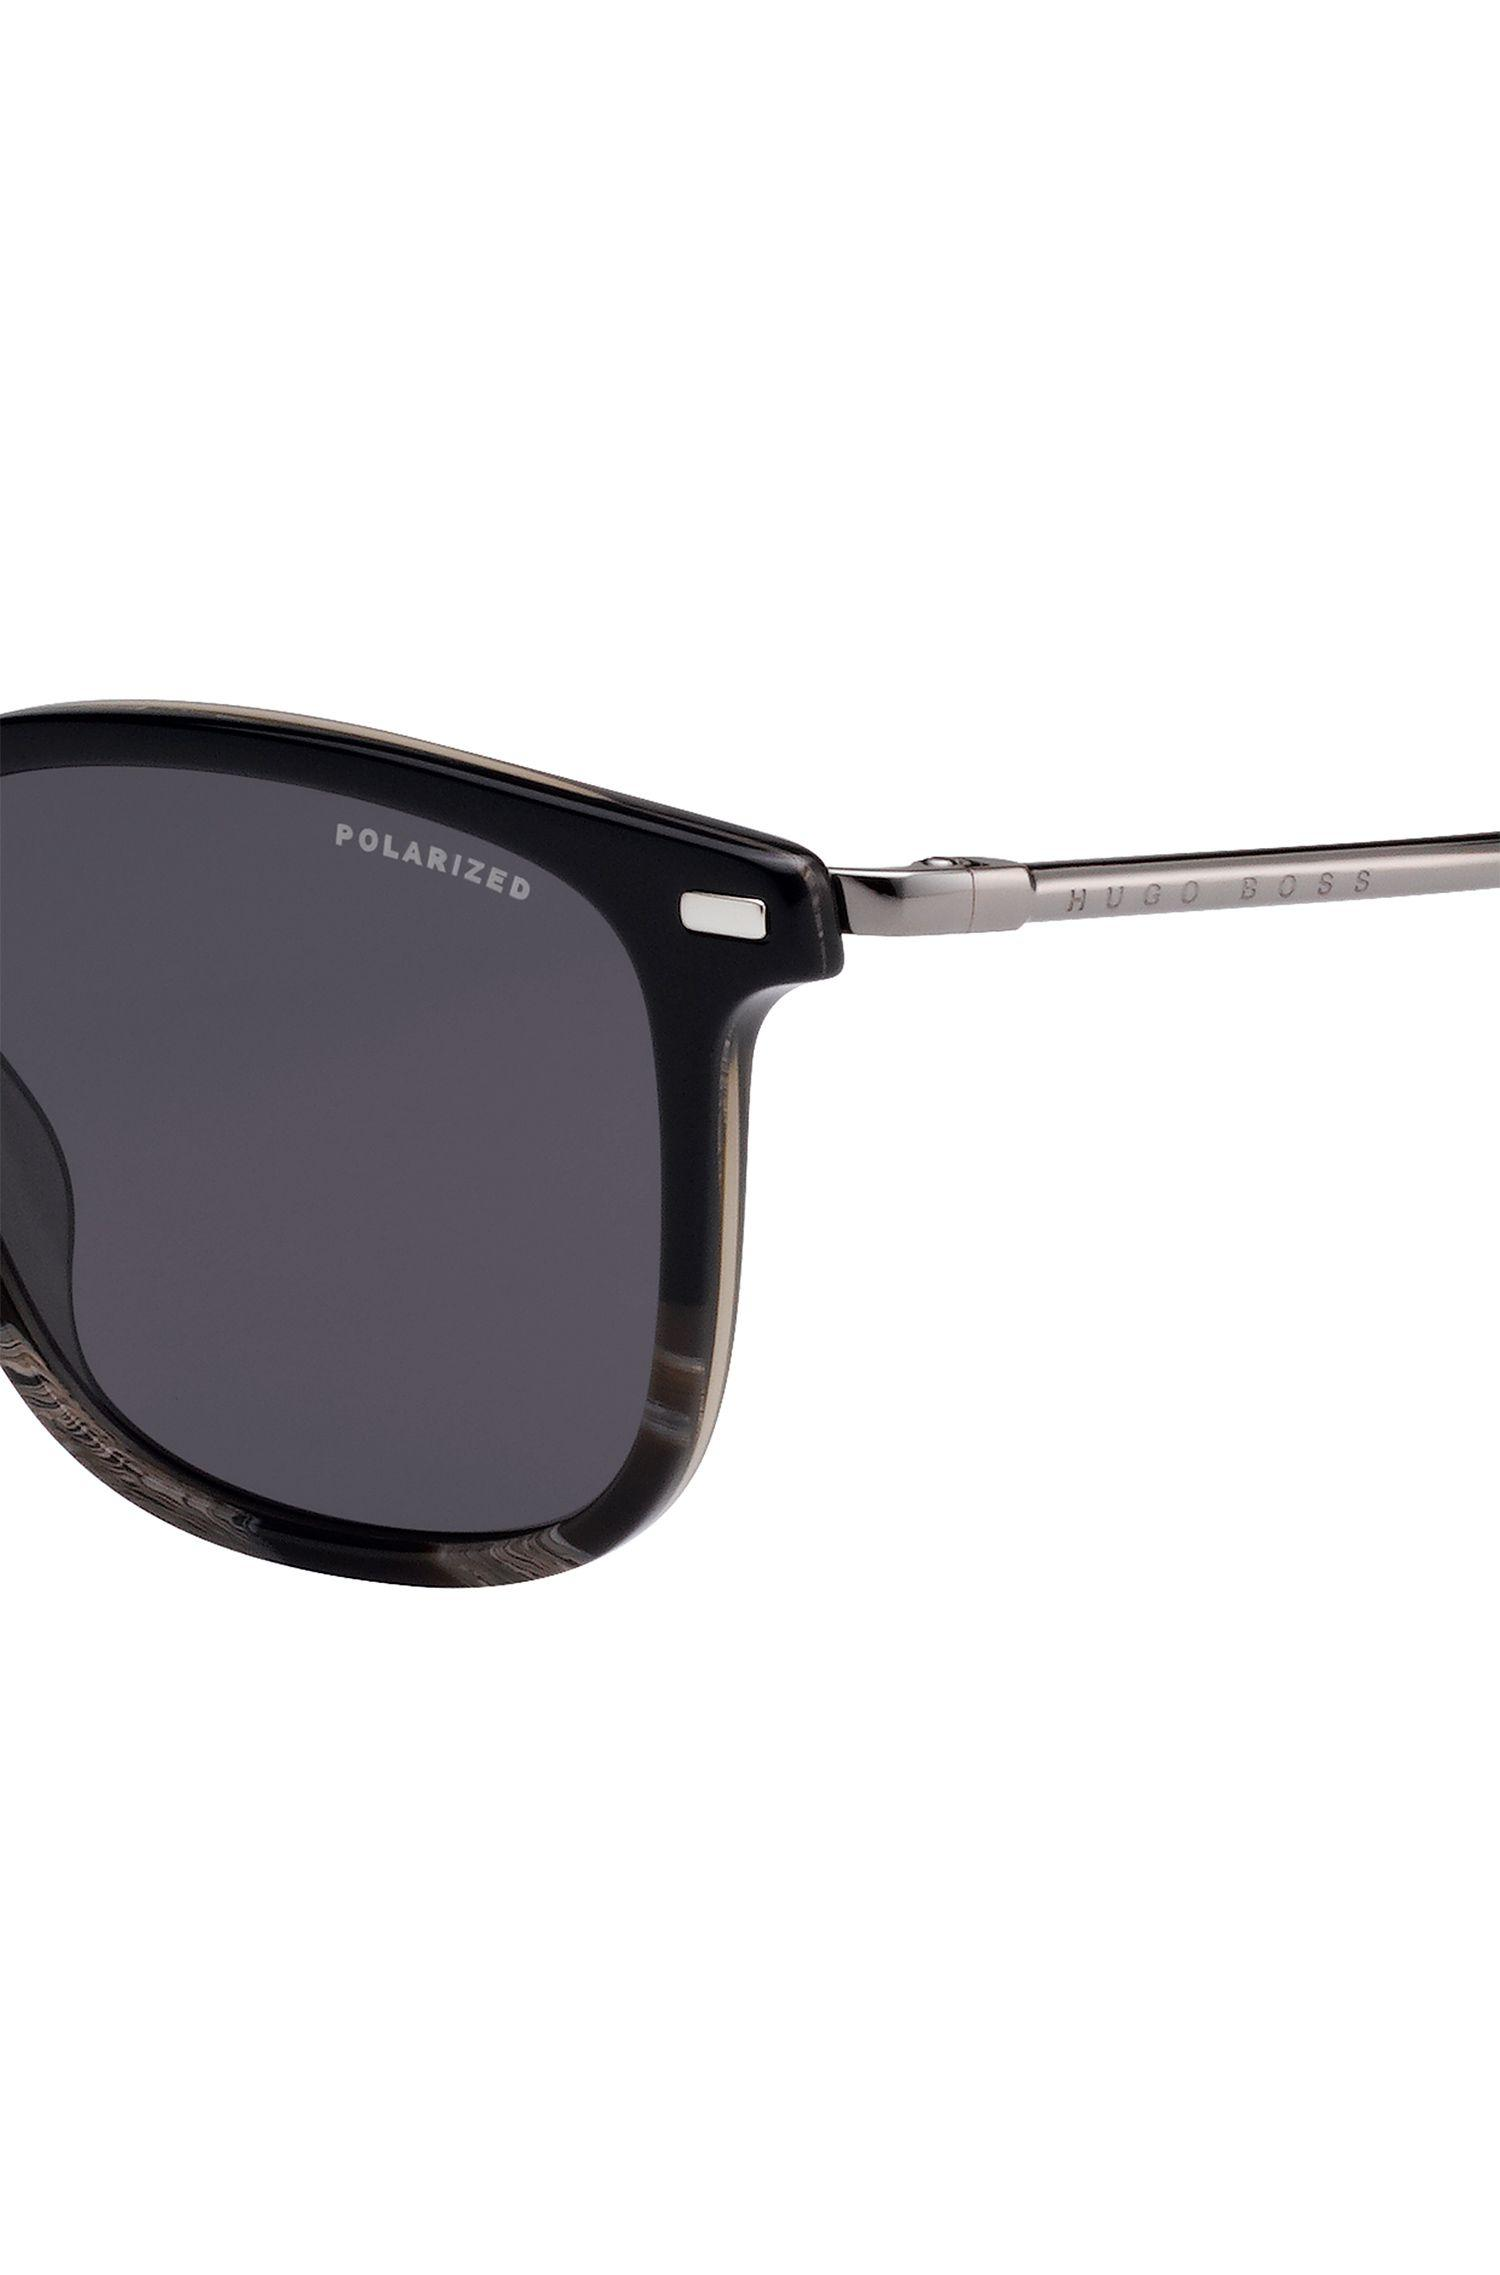 972df5c4ed7 BOSS - Polarized Sunglasses With Black-and-gray-horn Acetate Frames for Men.  View fullscreen